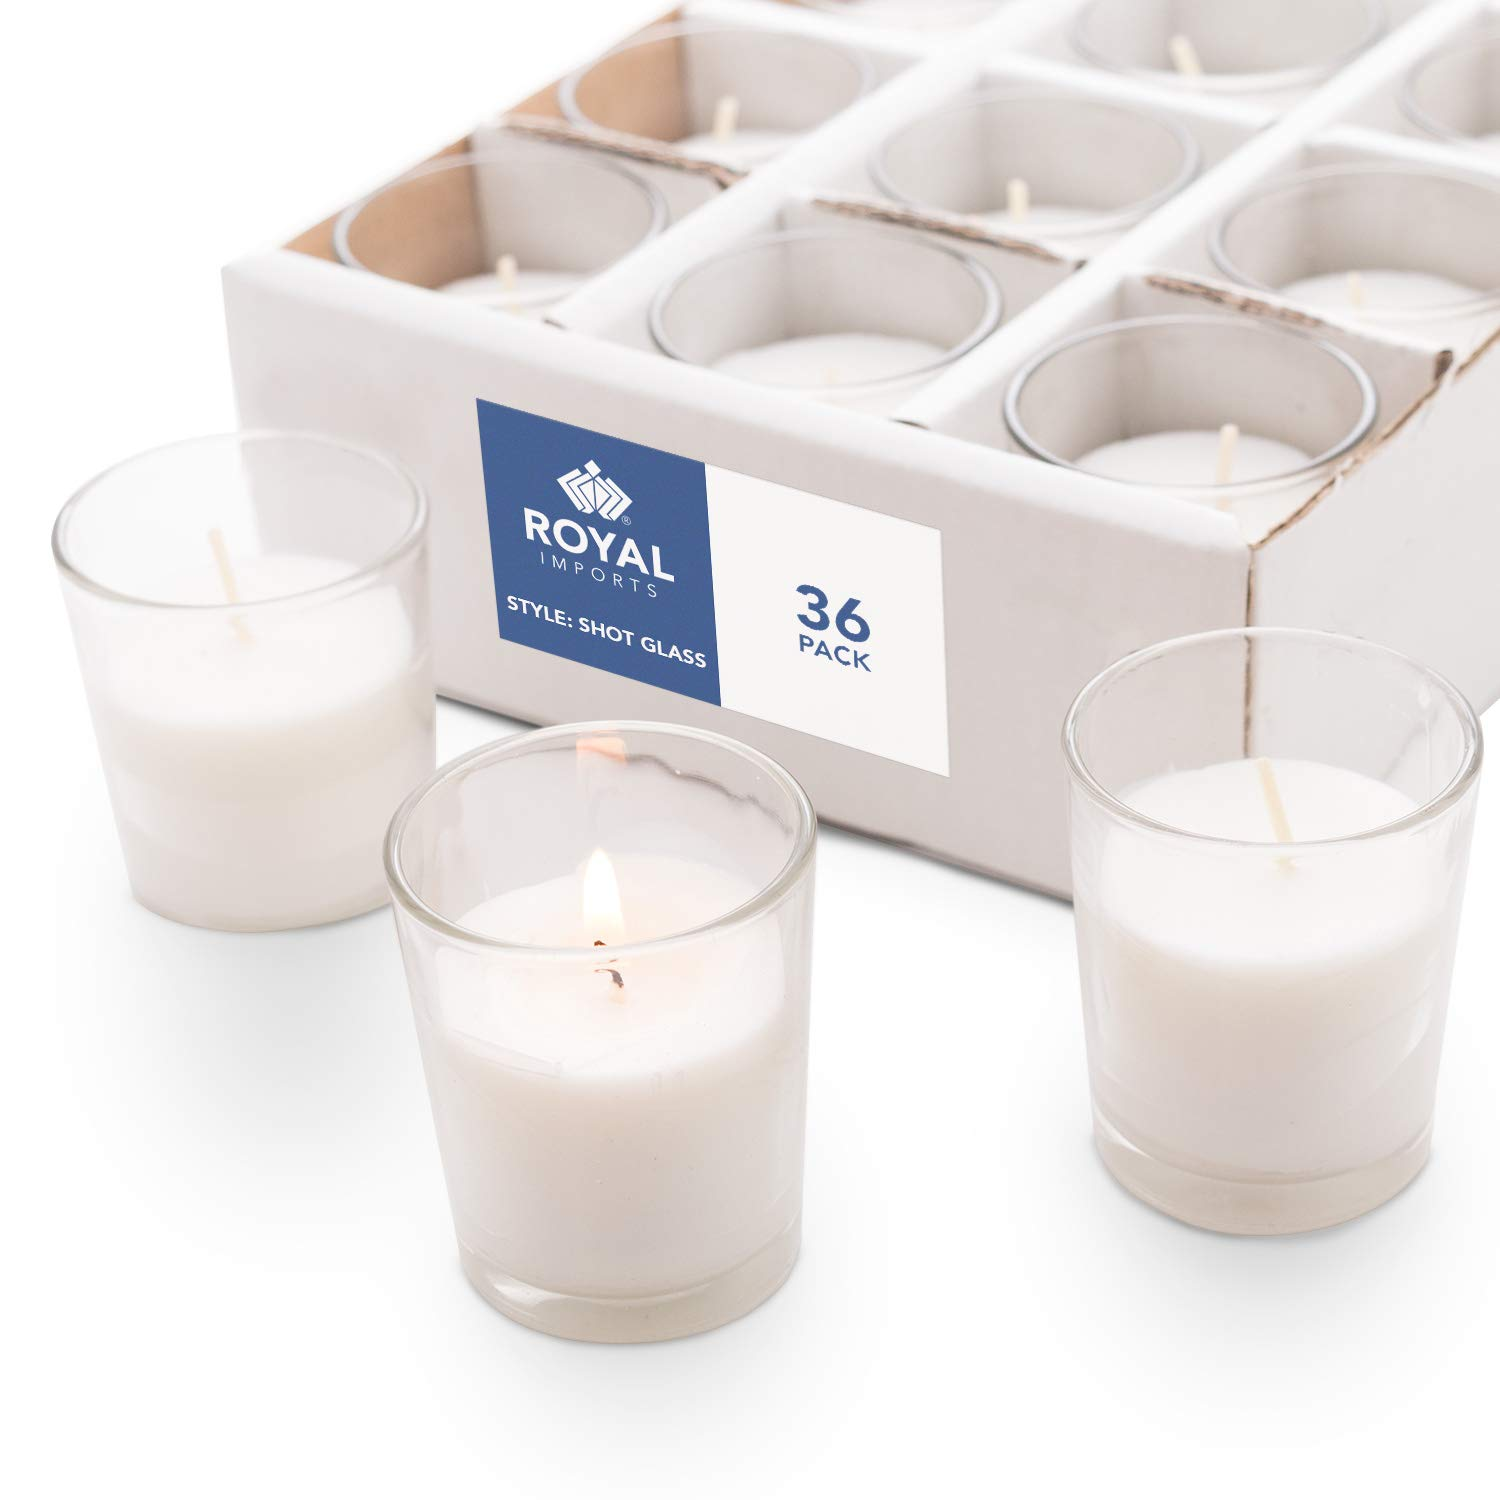 Royal Imports Votive Candles Bulk Set of 36 with White Candles Wax Filled in Clear Glass Holders, Unscented, Ideal for Restaurant, Weddings, Party, Spa, Holiday, Home Decor - 15 Hour Burn Time